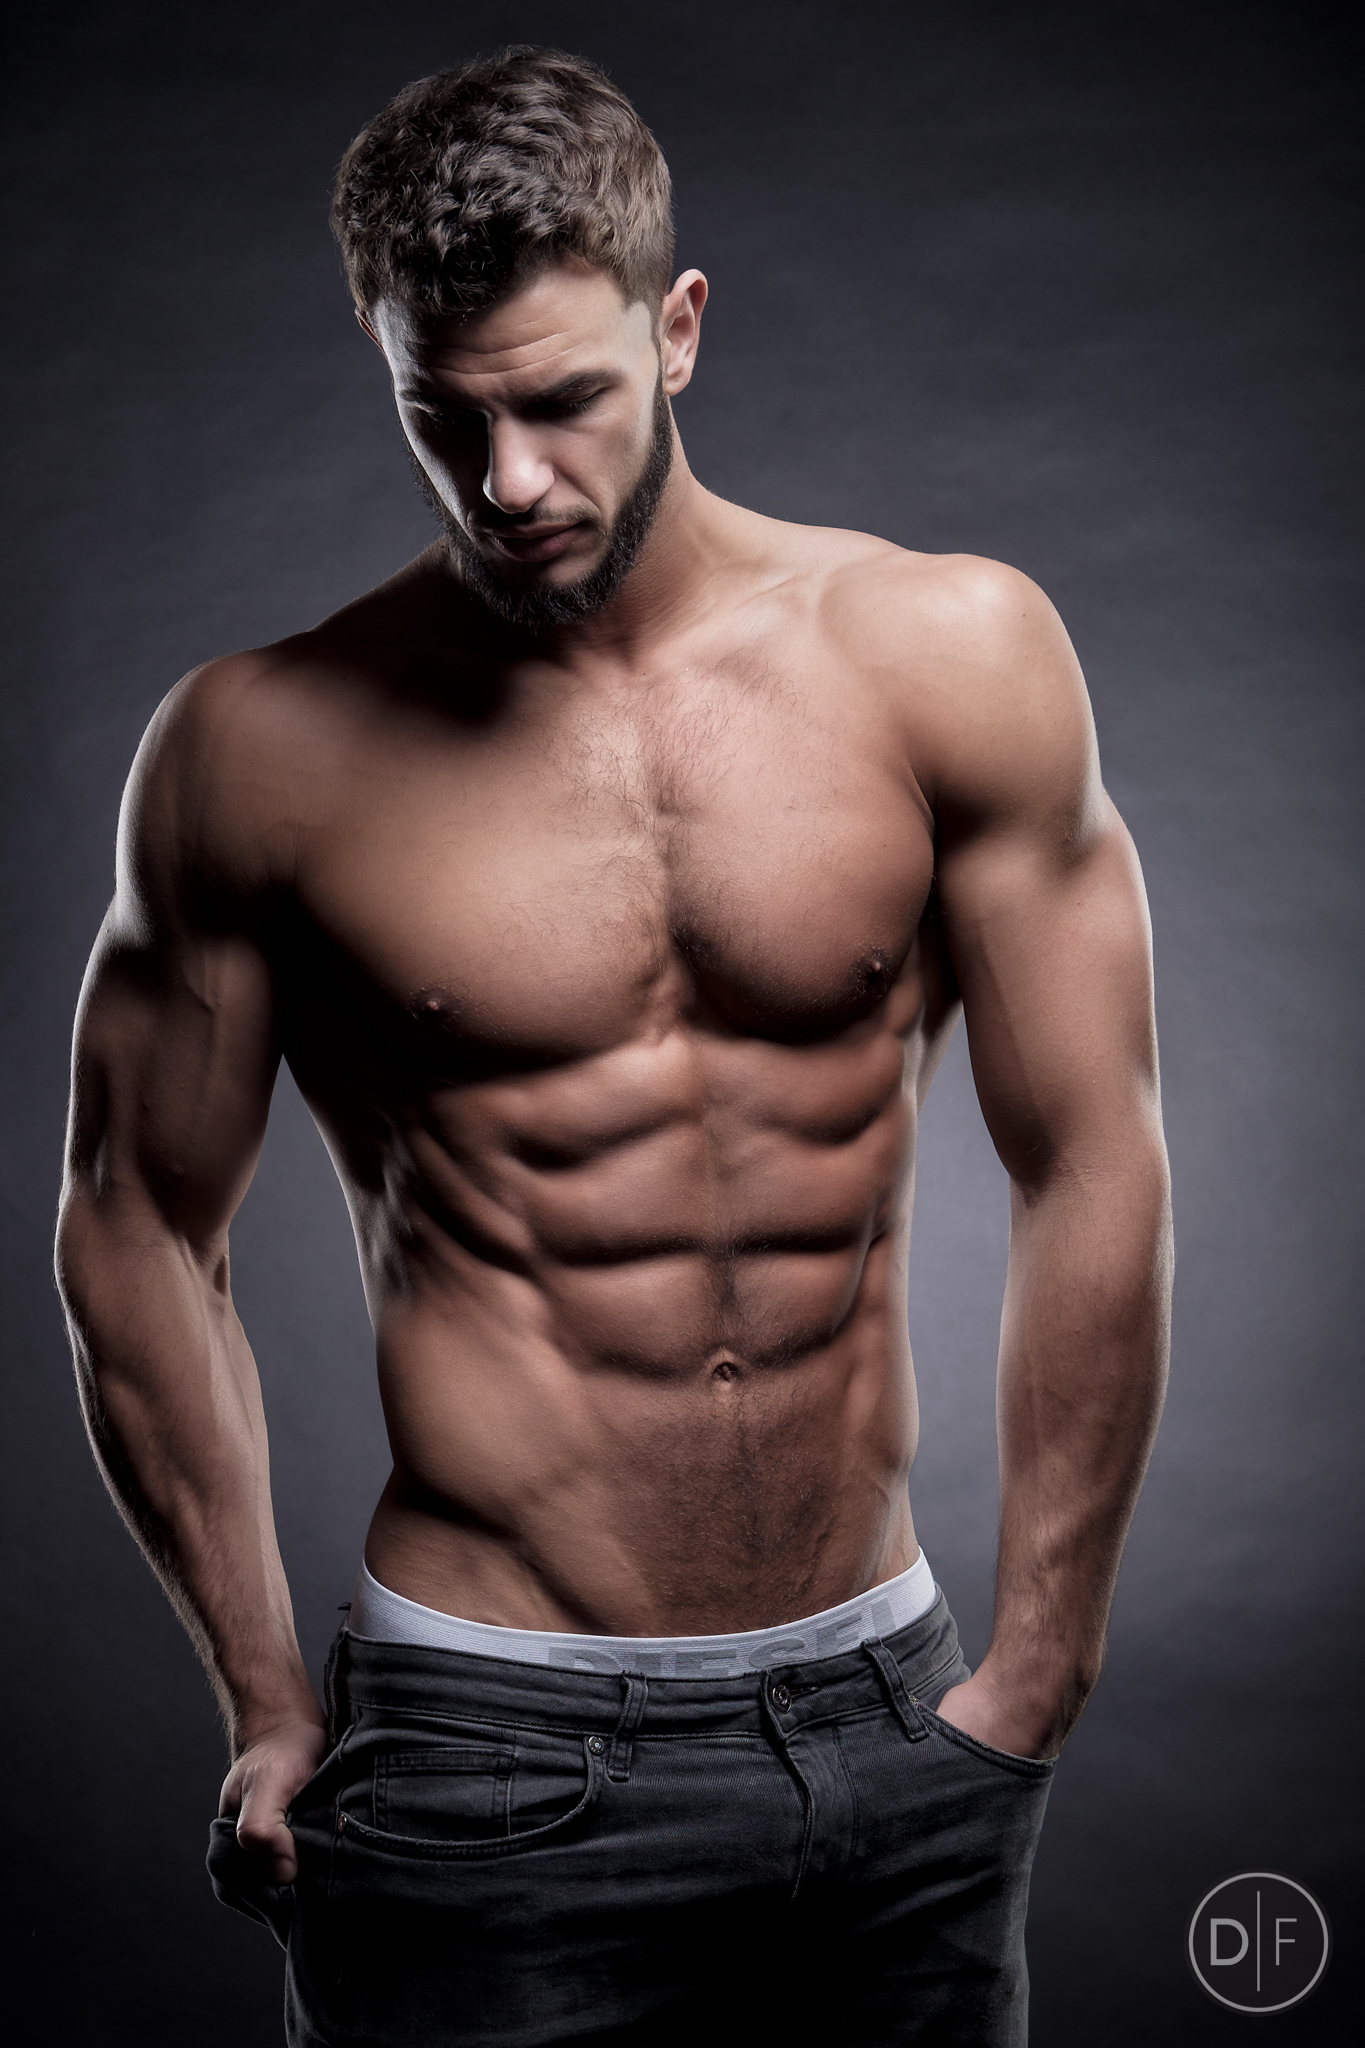 Physique model